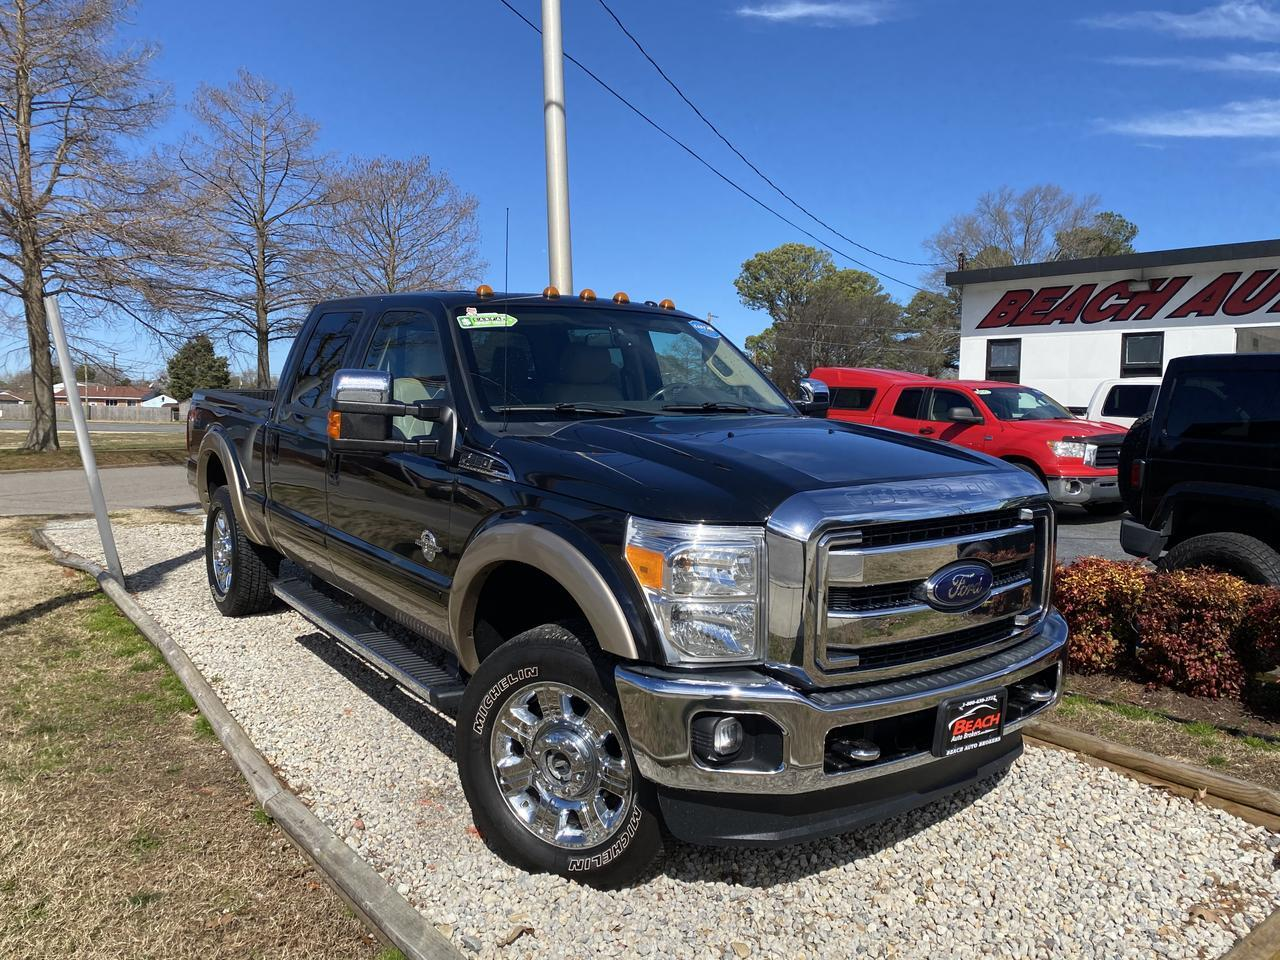 2012 FORD F-350 LARIAT CREW CAB 4X4, WARRANTY, DIESEL, LEATHER, NAV, HEATED/COOLED SEATS, BLUETOOTH,CLEAN! Norfolk VA